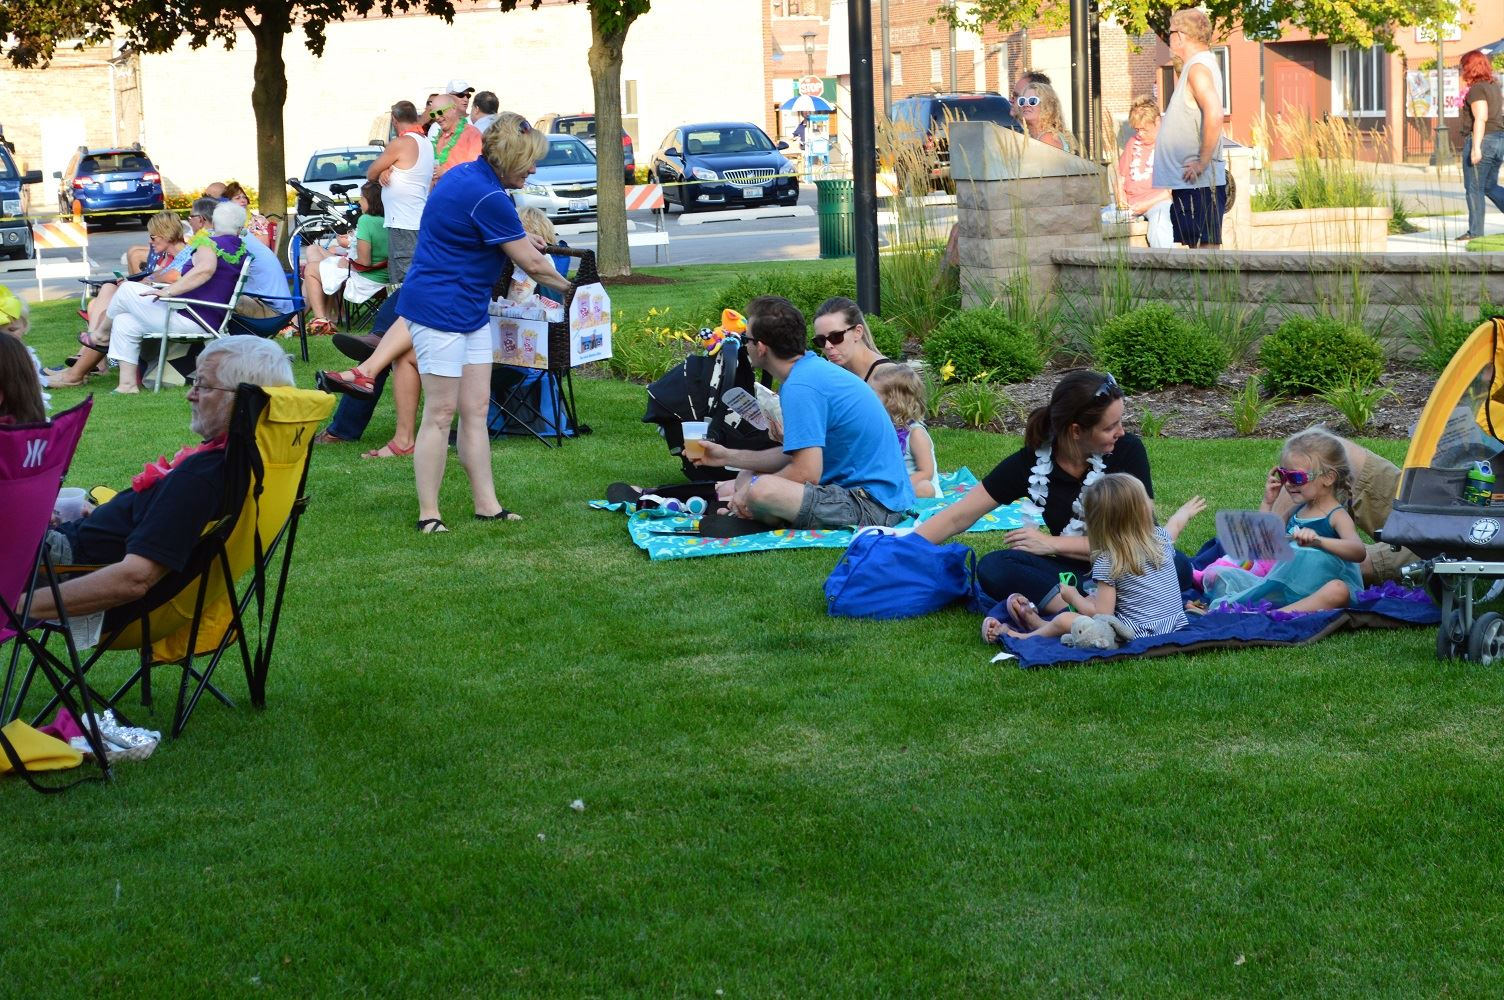 Community members sit on blankets and chairs at Cortesi Veterans Memorial Park to watch Mr. Meyers band perform Aug. 4, 2016.